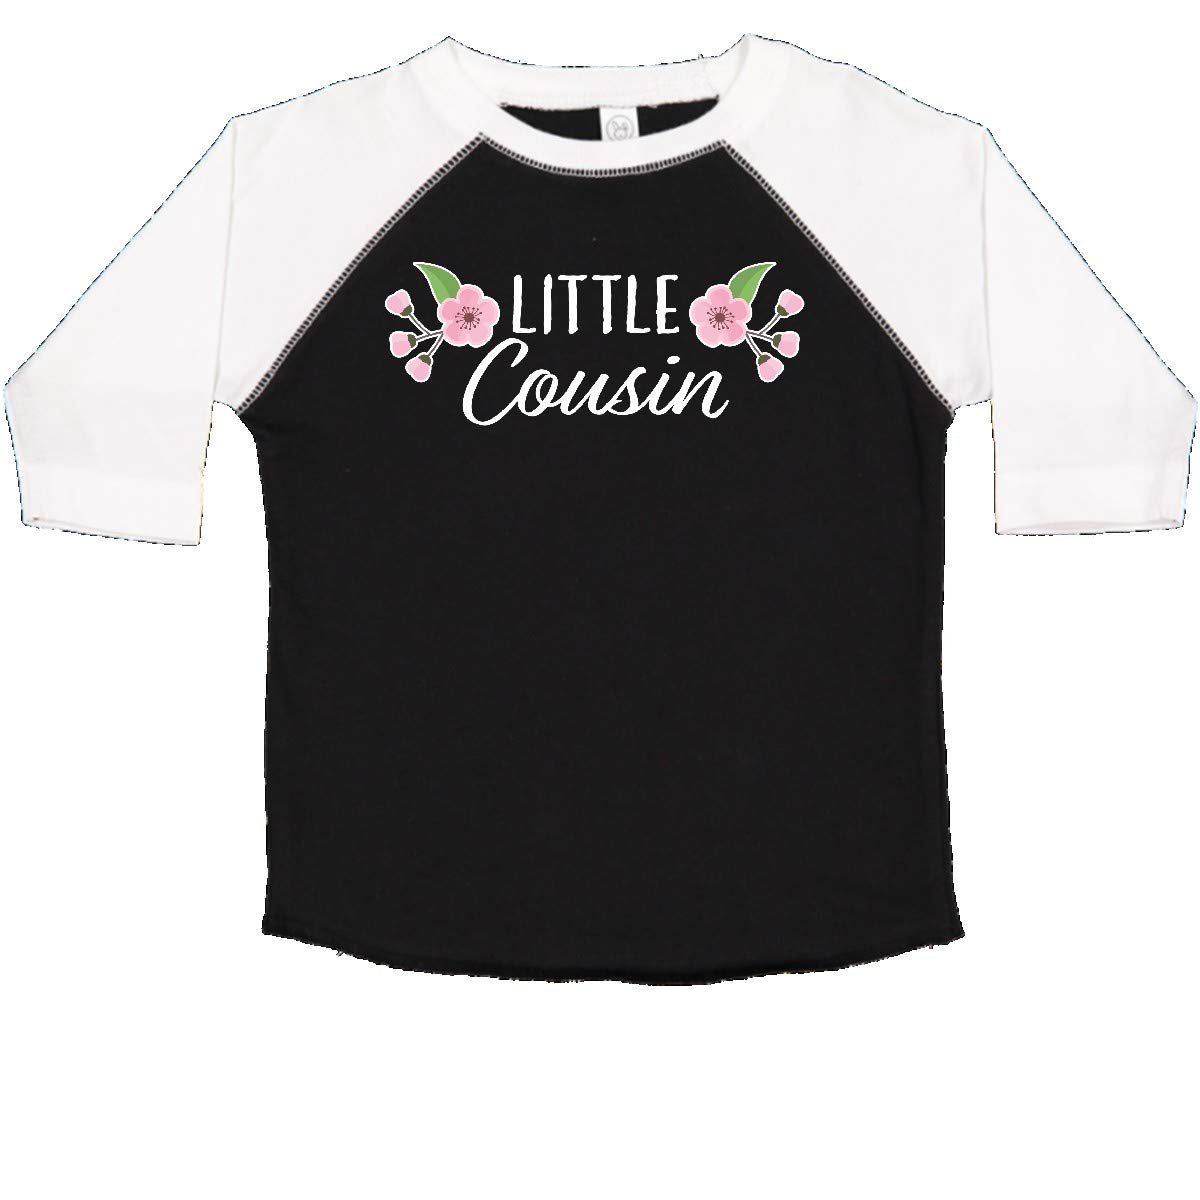 inktastic Little Cousin with Cherry Blossom Flowers Toddler T-Shirt